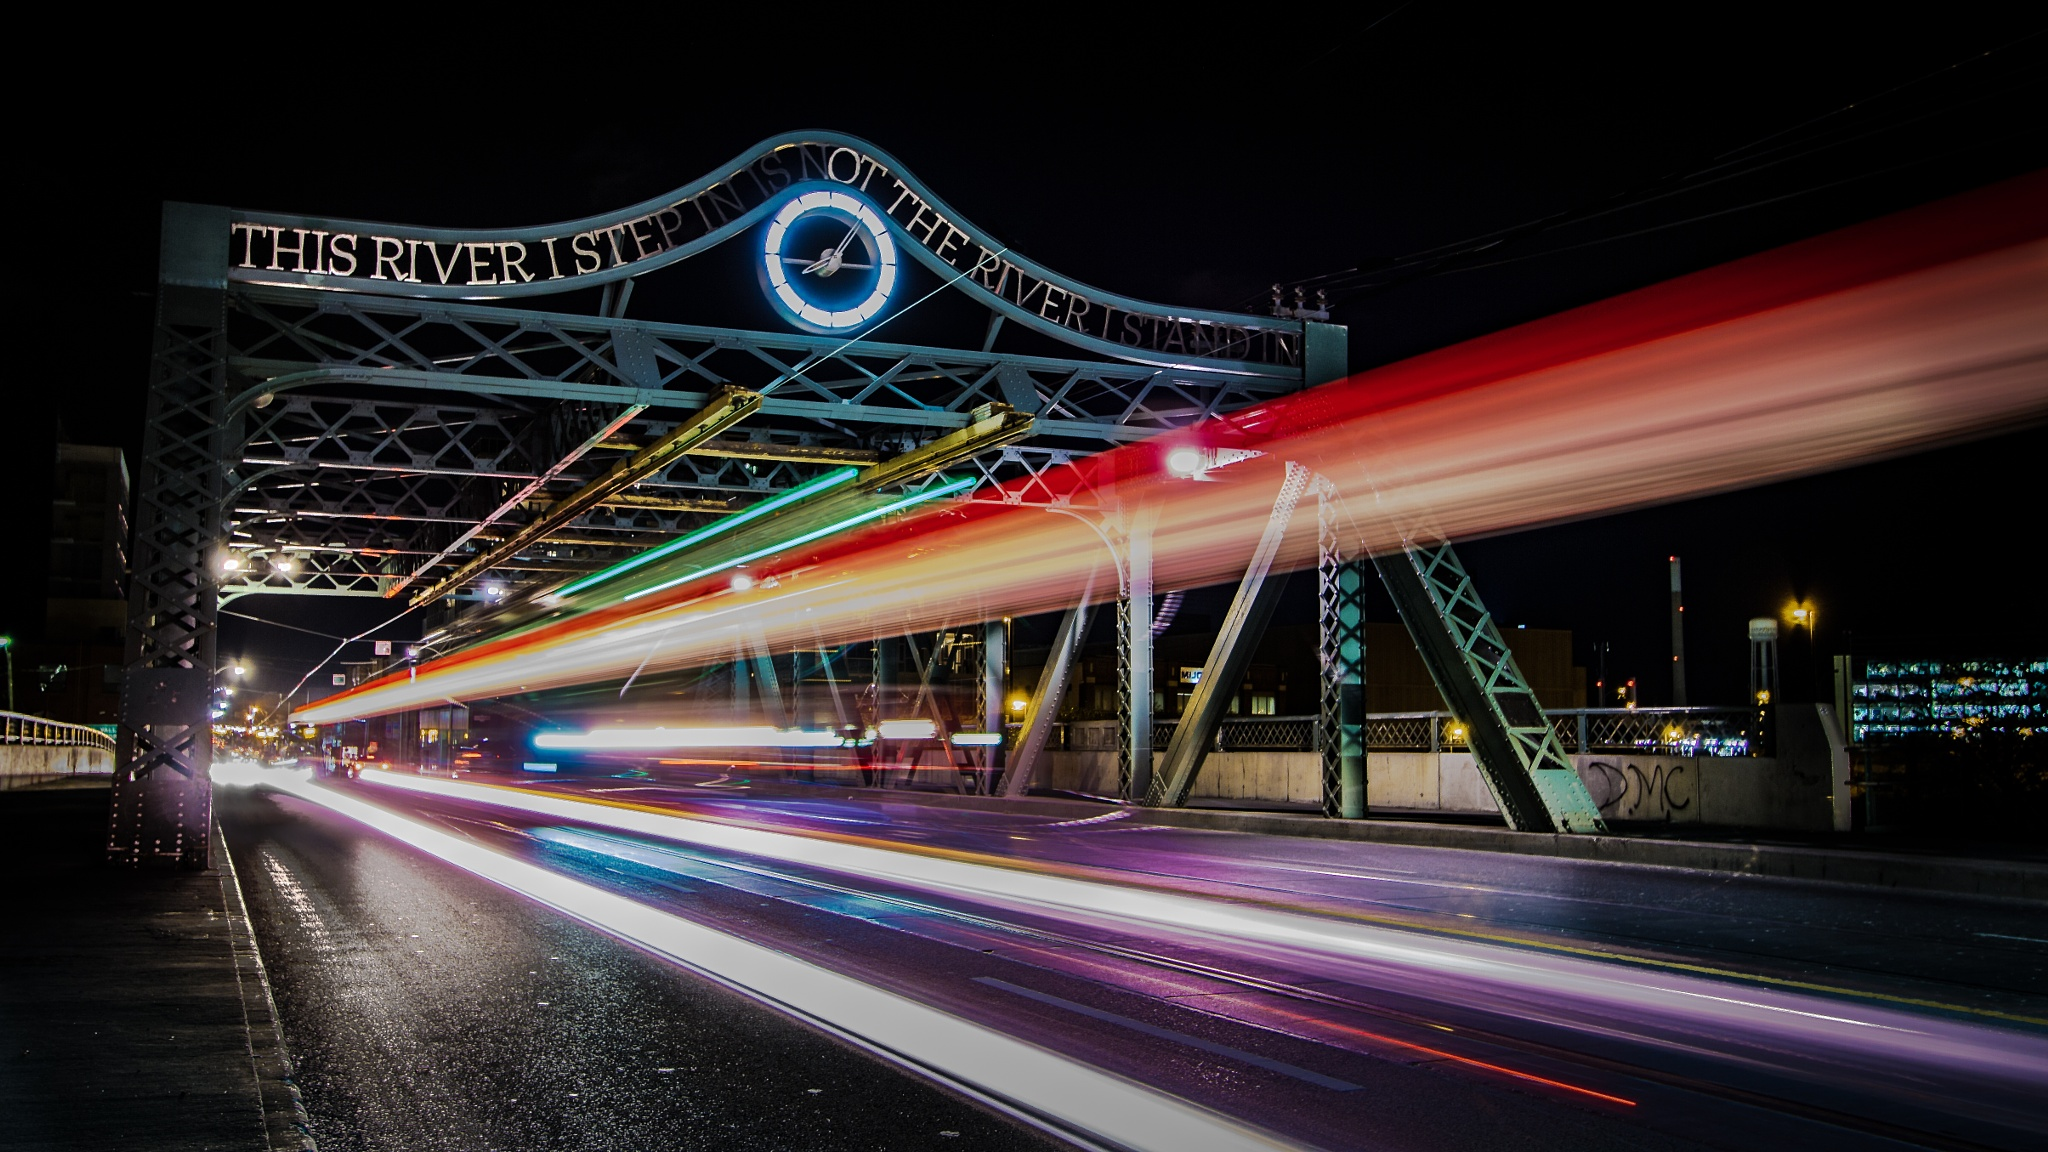 Queen Street Bridge by Images by Marty